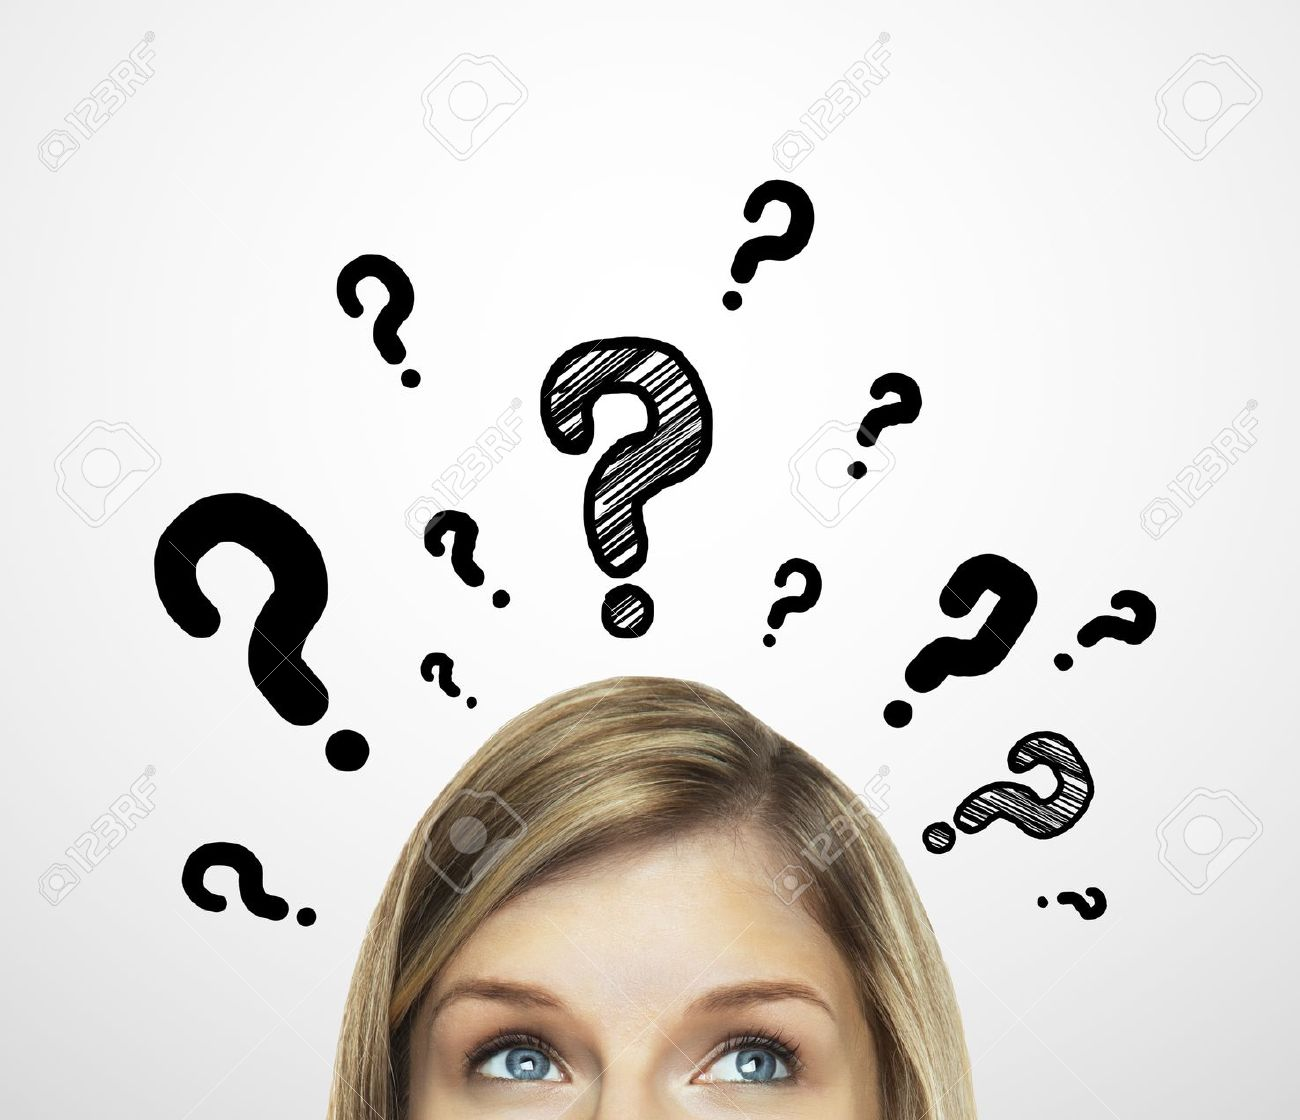 thinking women with question mark on white background Stock Photo - 16883291